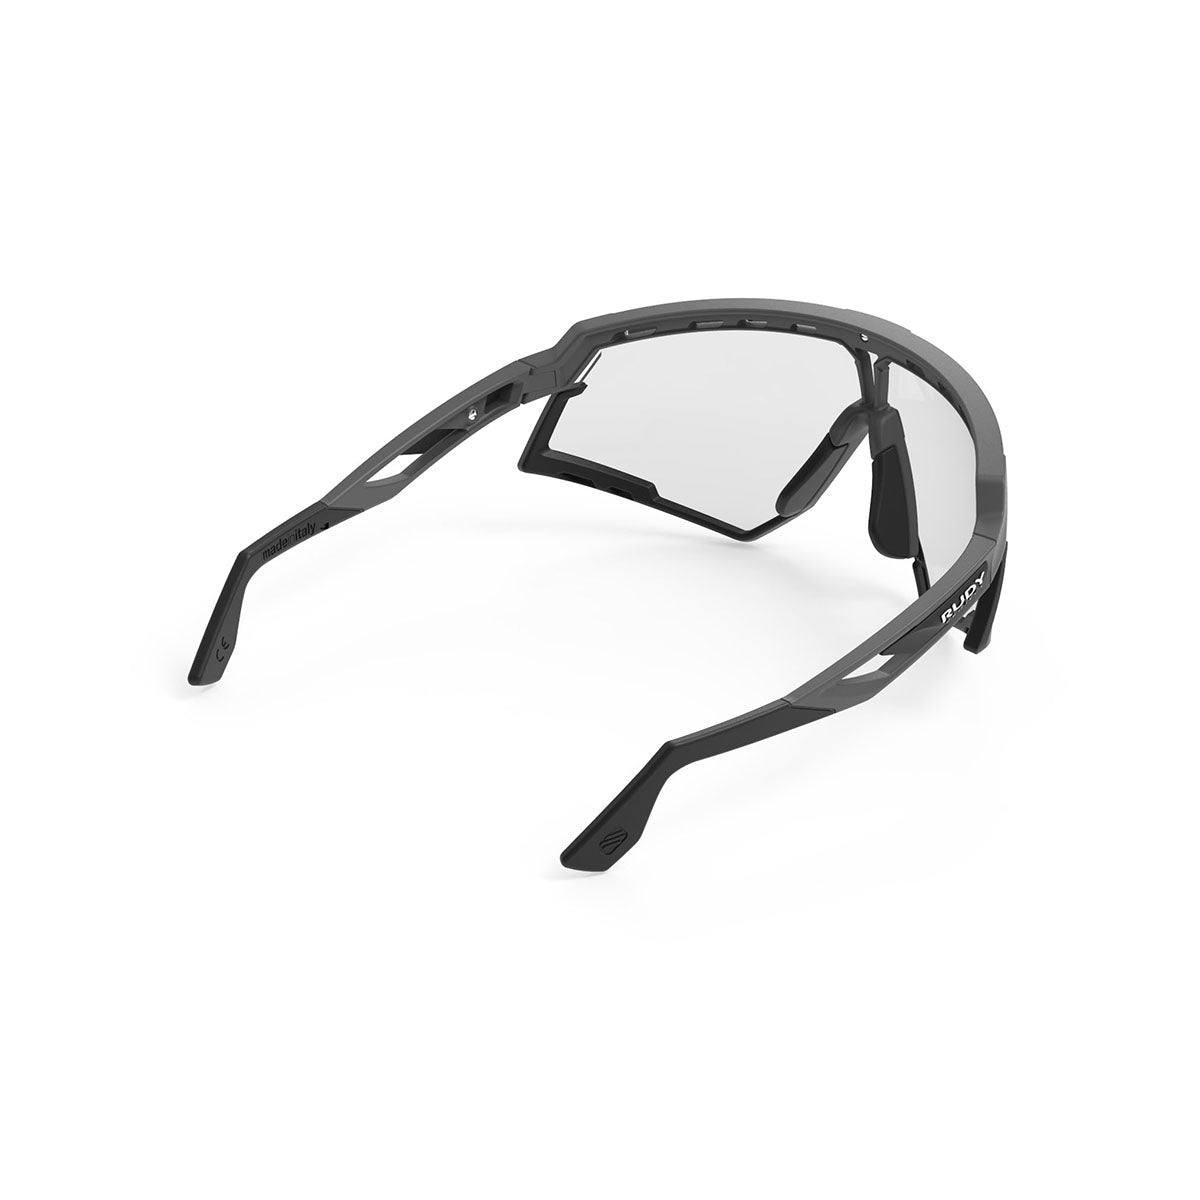 Rudy Project - Defender - frame color: Graphene - lens color: ImpactX-2 Photochromic clear to black - Bumper Color: Black - photo angle: Top Back Angle Variant Hover Image